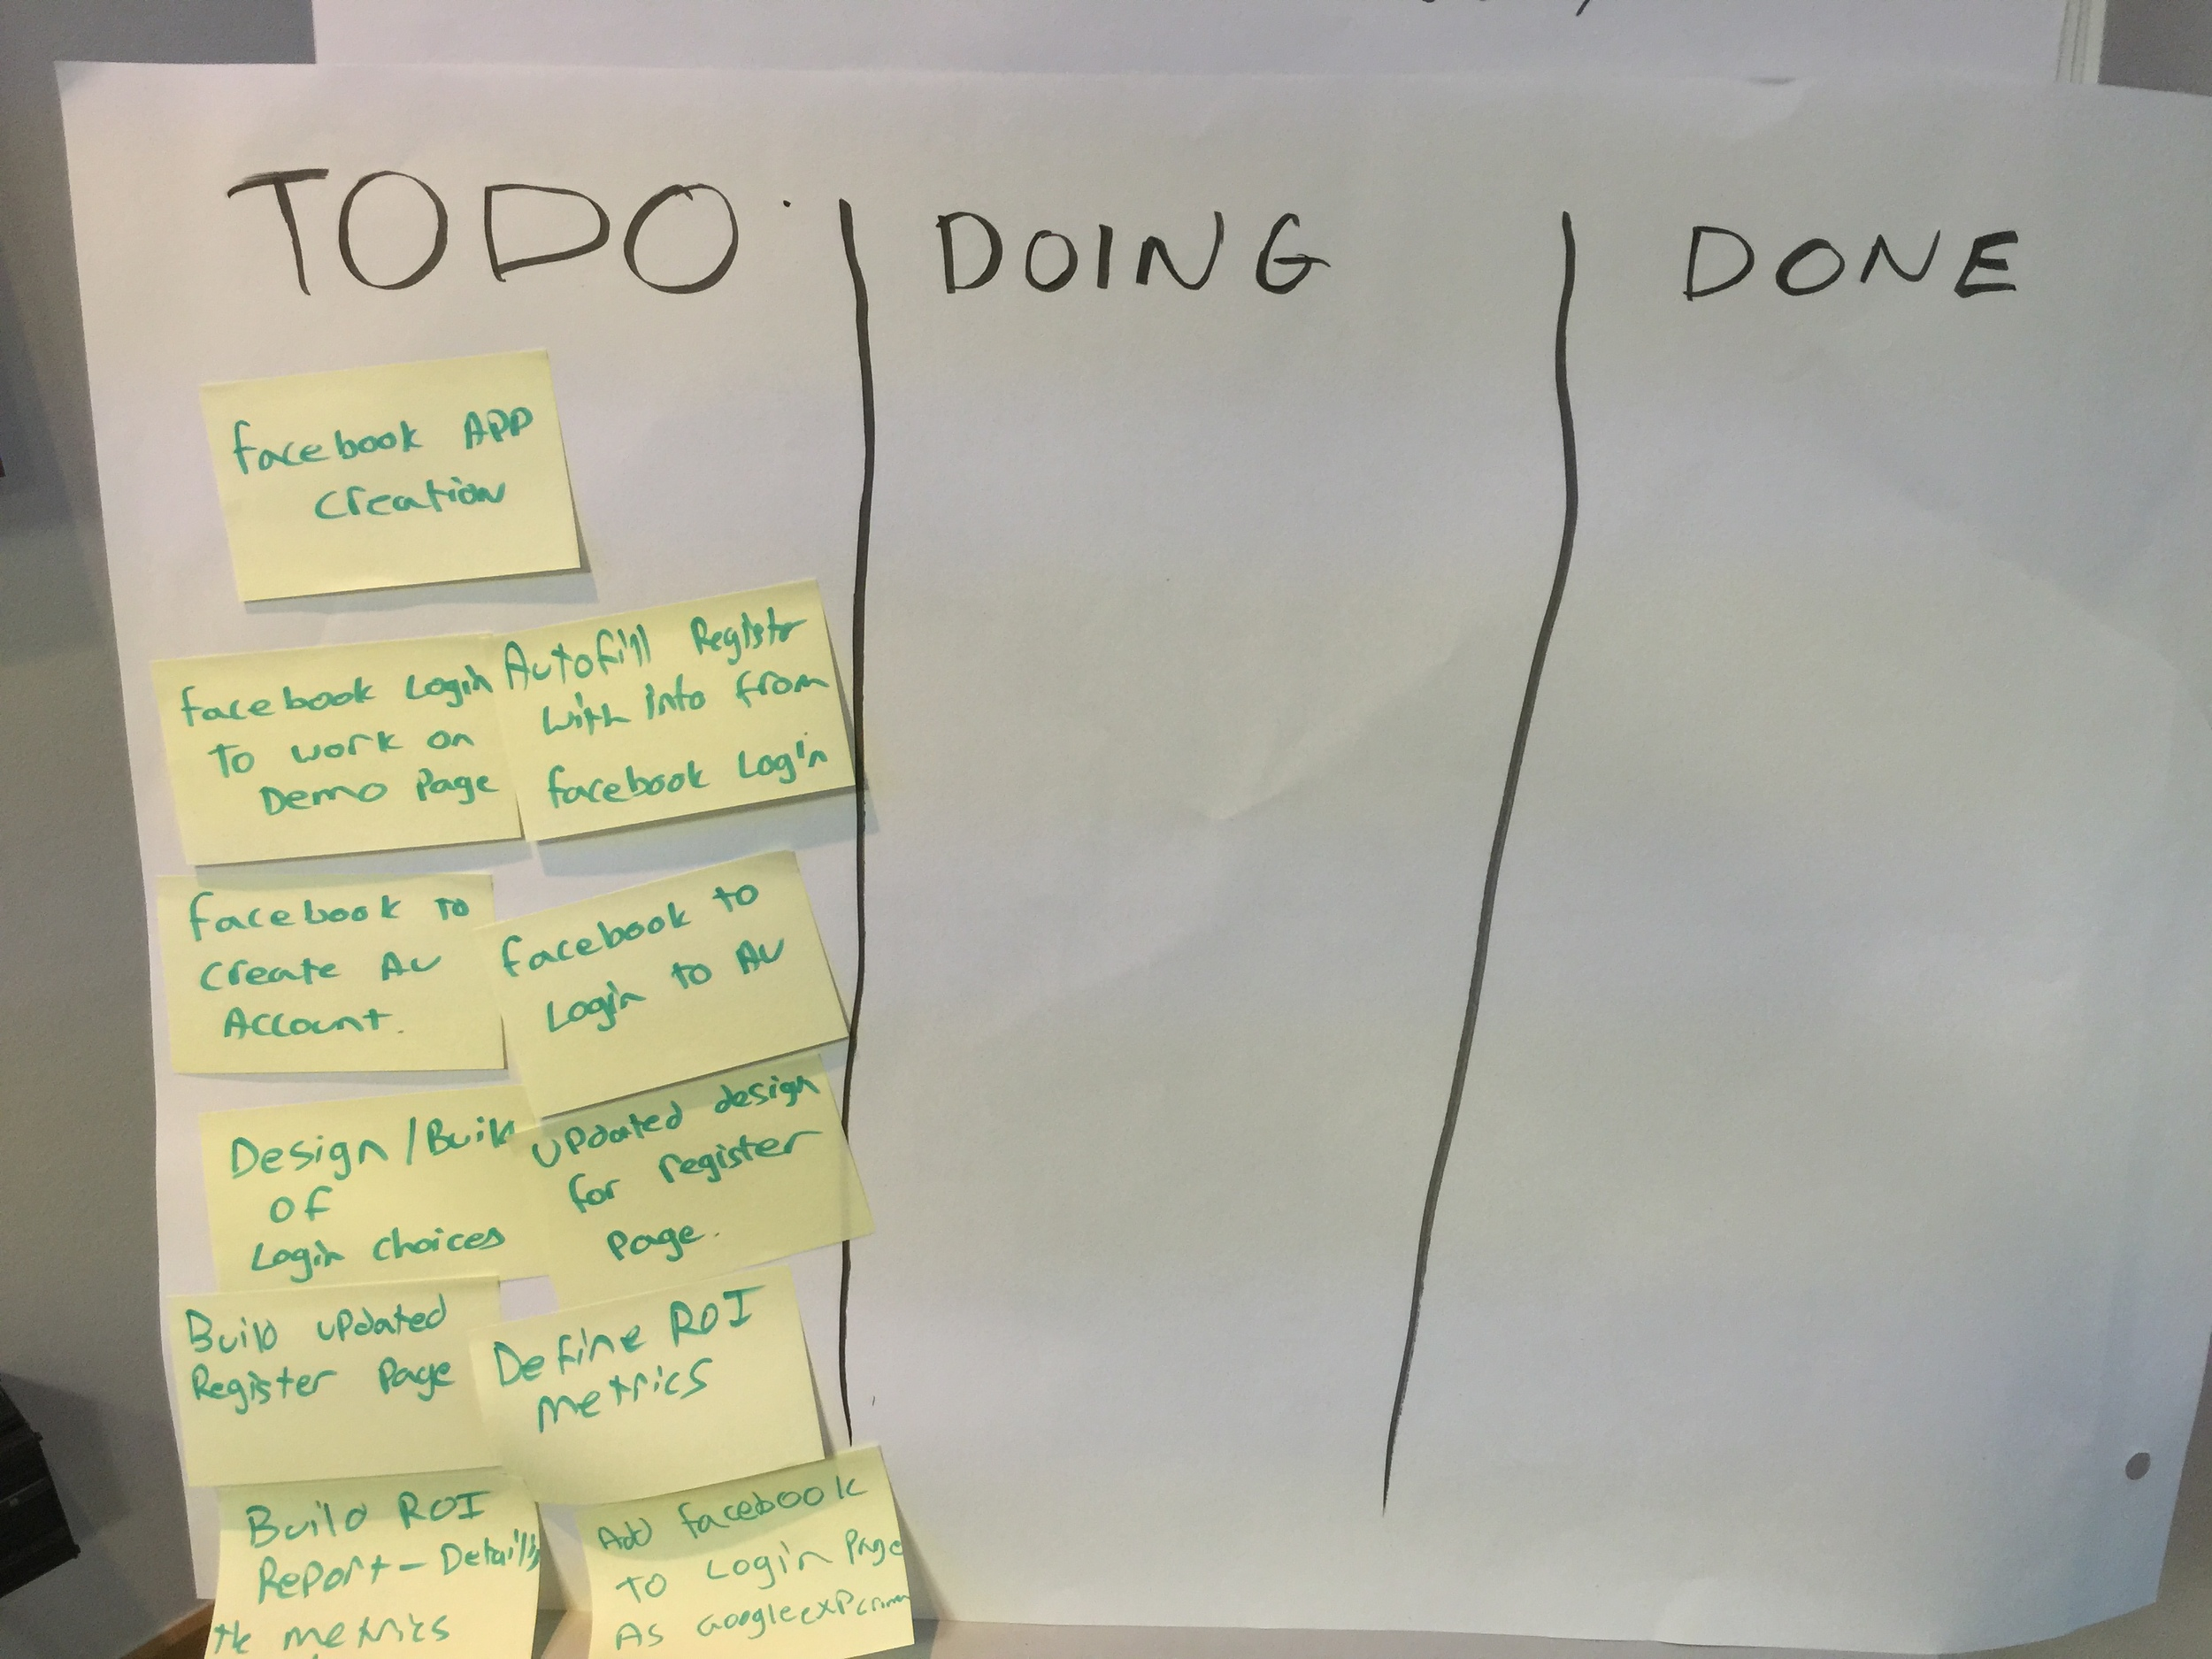 The start of our Kanban board, we've broken down the project into small, achievable chunks...